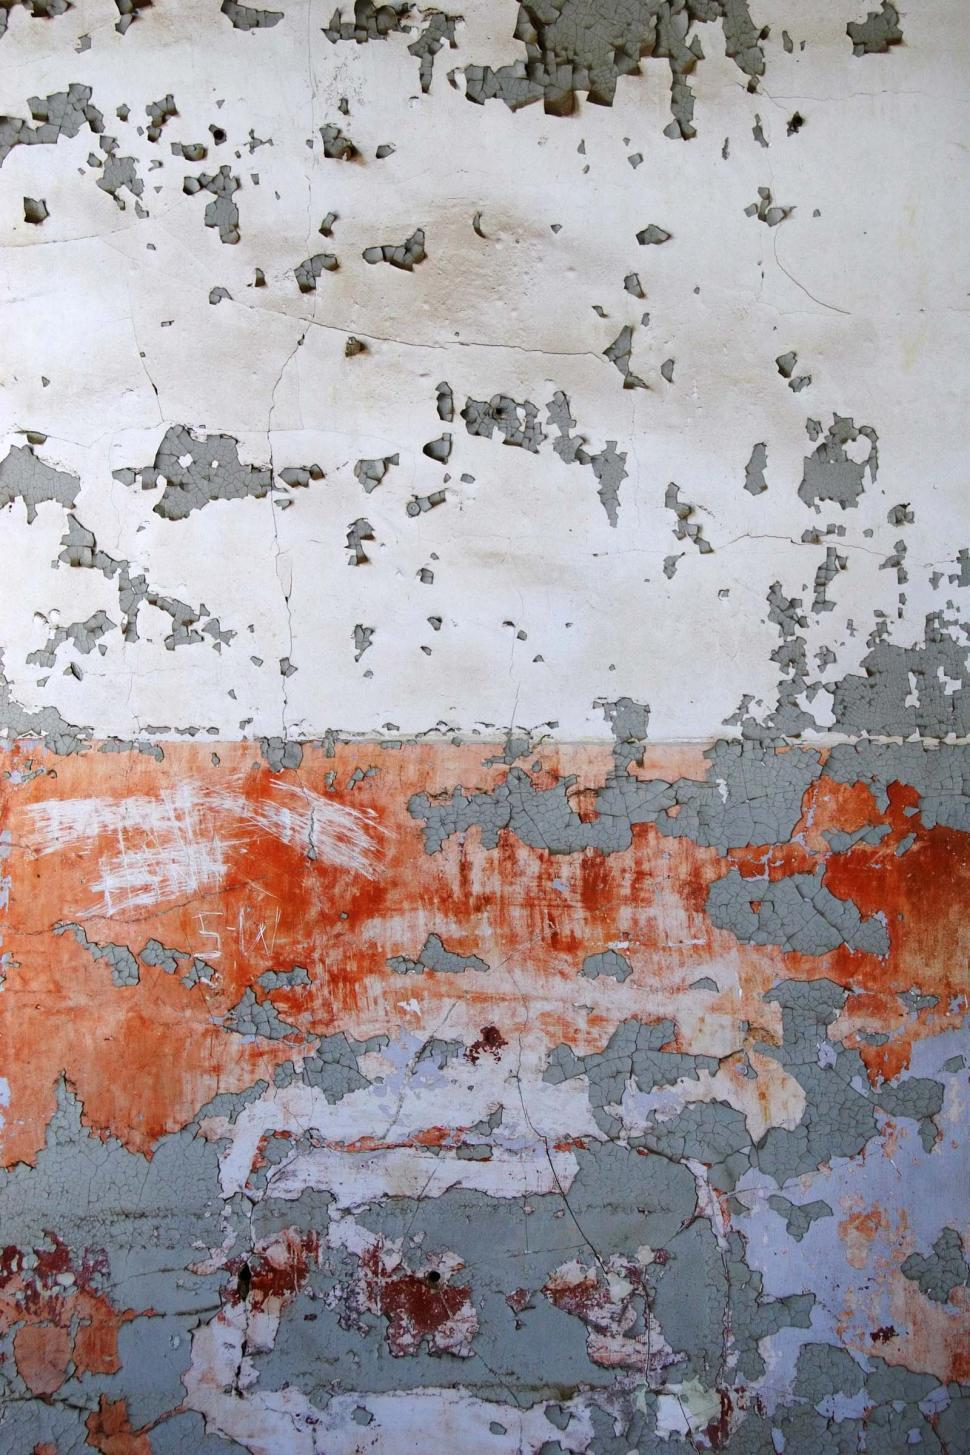 Download Free Stock HD Photo of Old wall of peeling paint Online